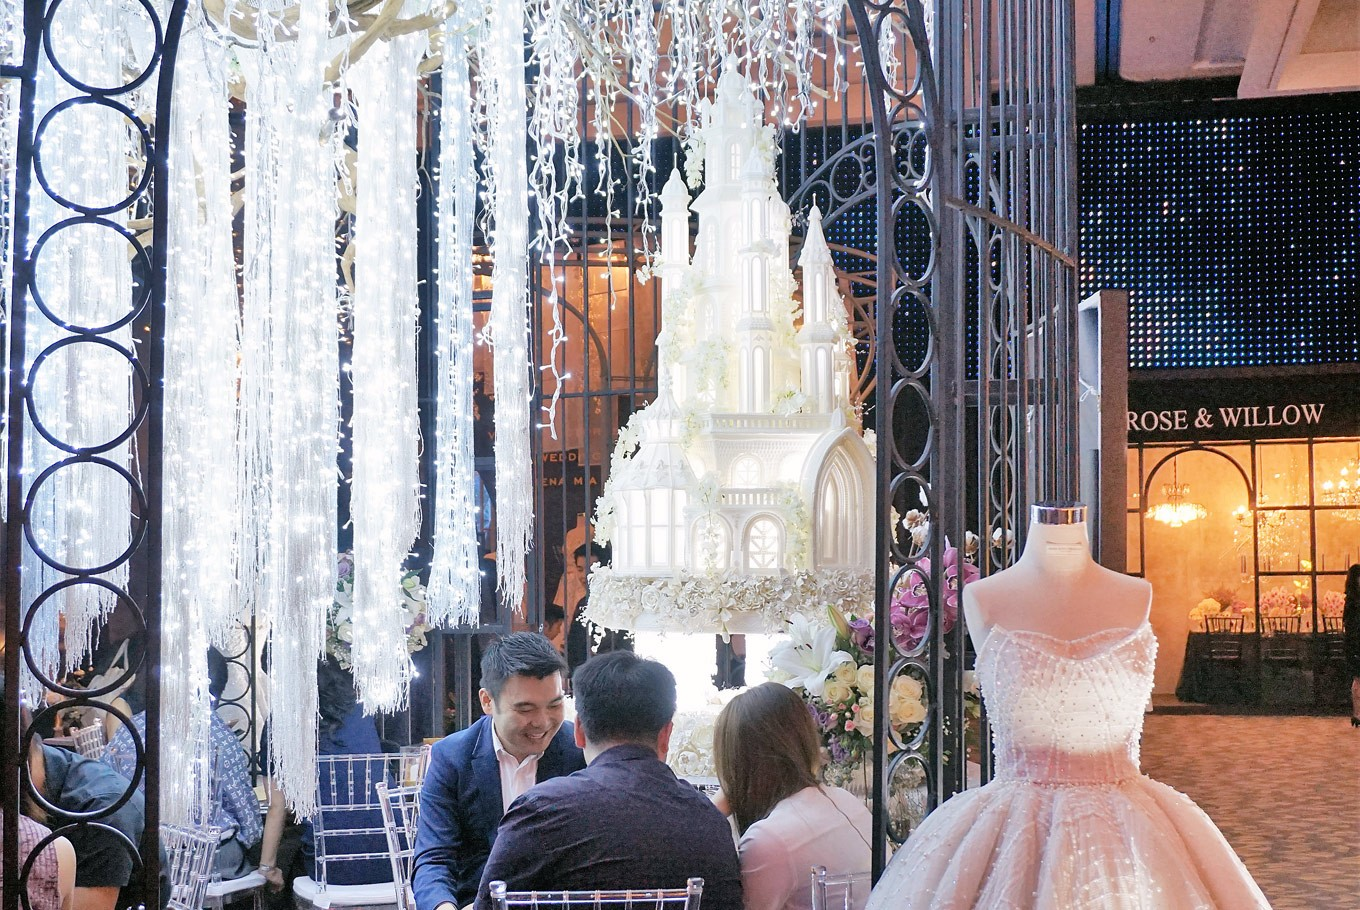 Wedding trends: Tech-inspired or intimate?